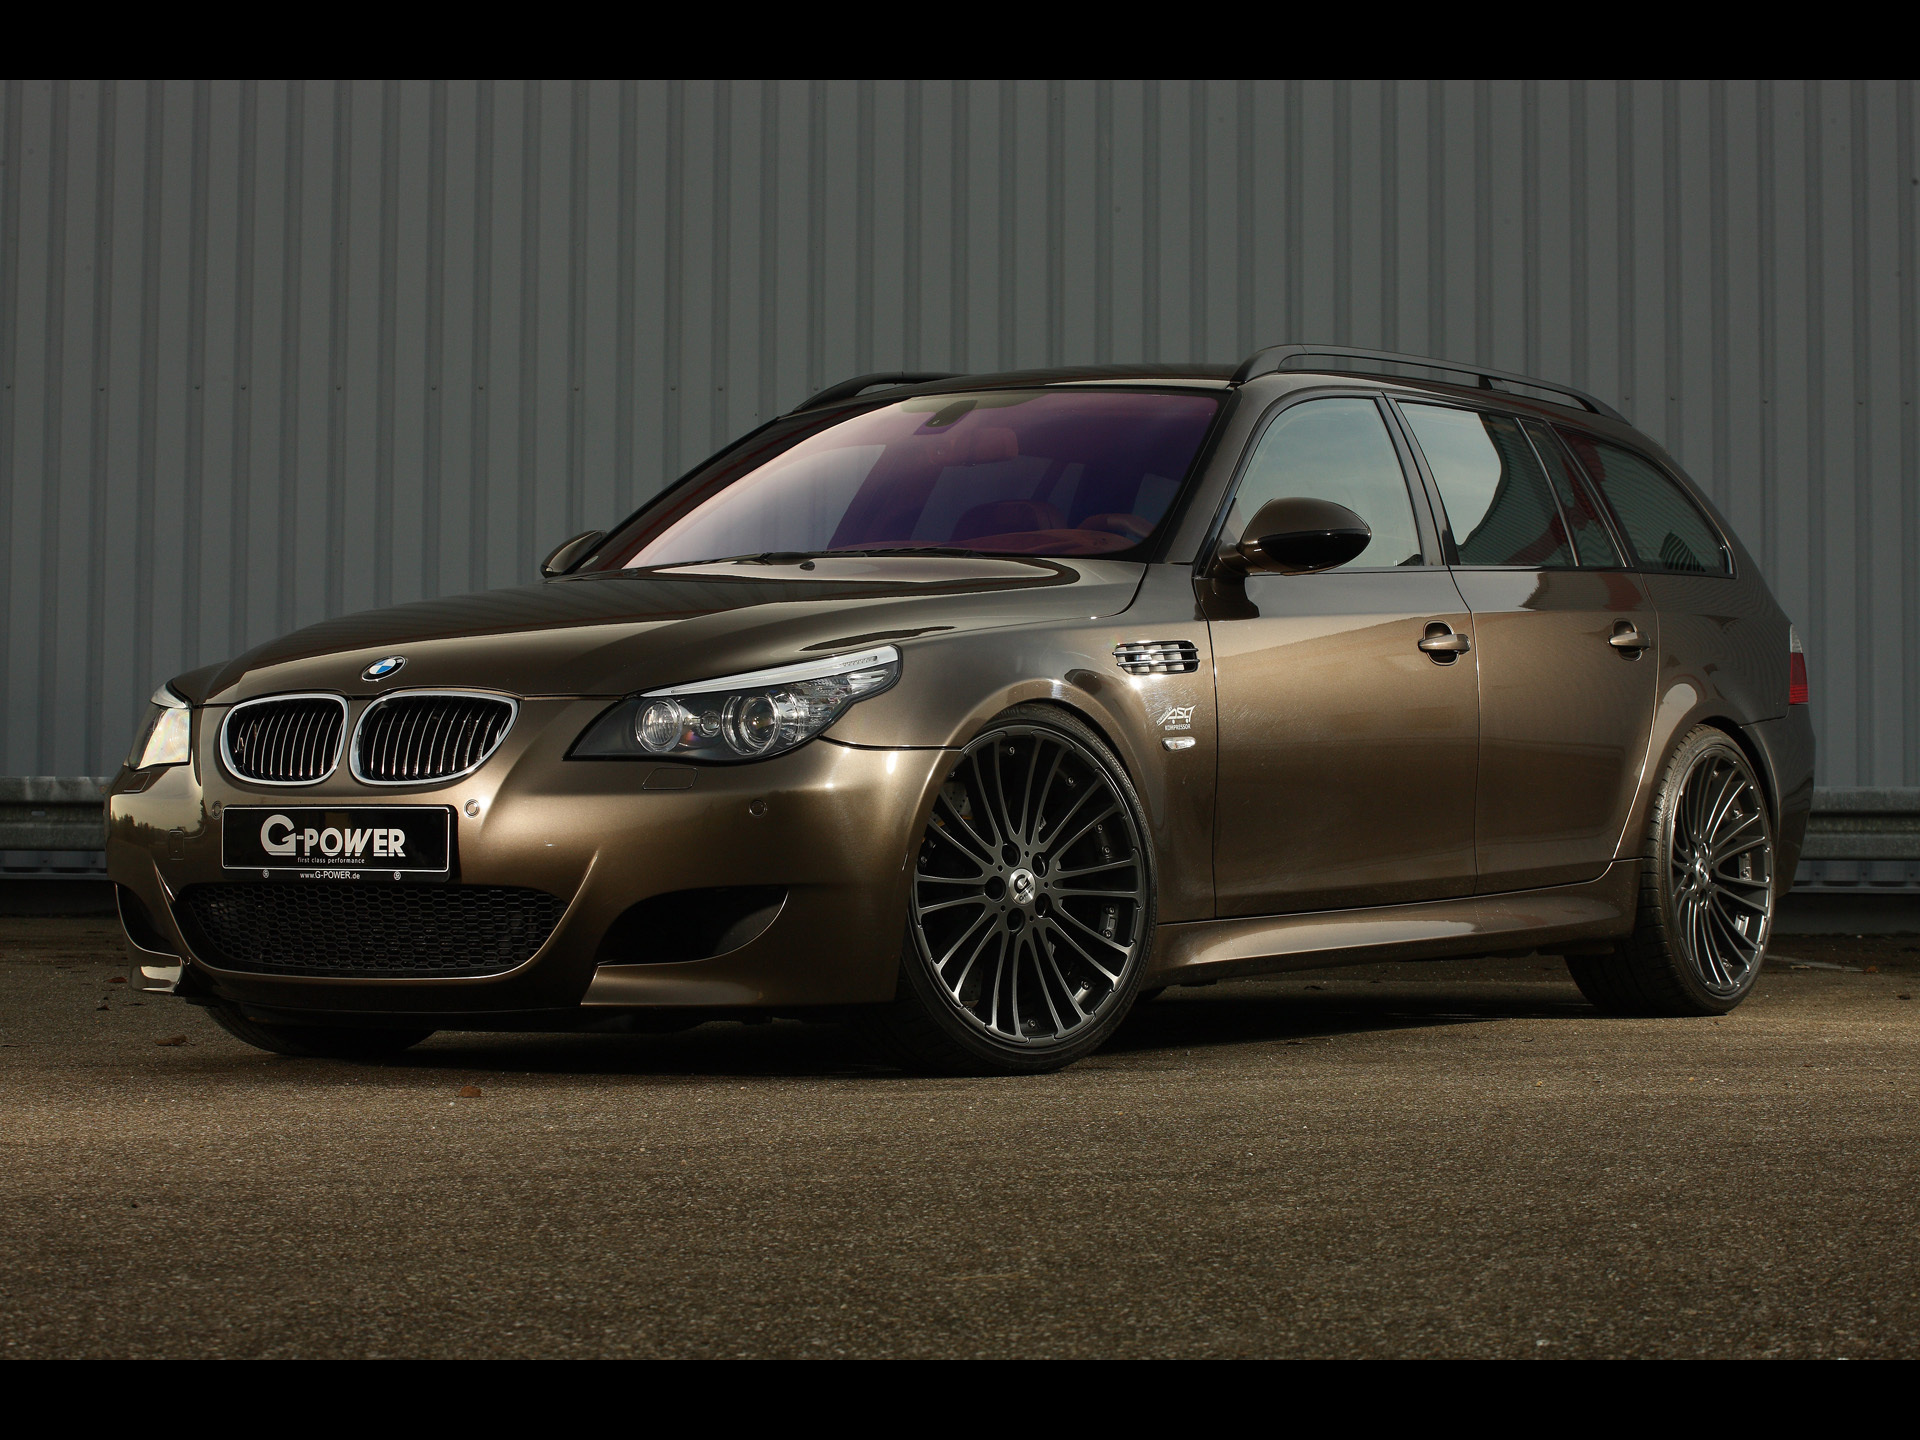 bmw m5 e61 hurricane rs touring by g power bmw wallpaper. Black Bedroom Furniture Sets. Home Design Ideas